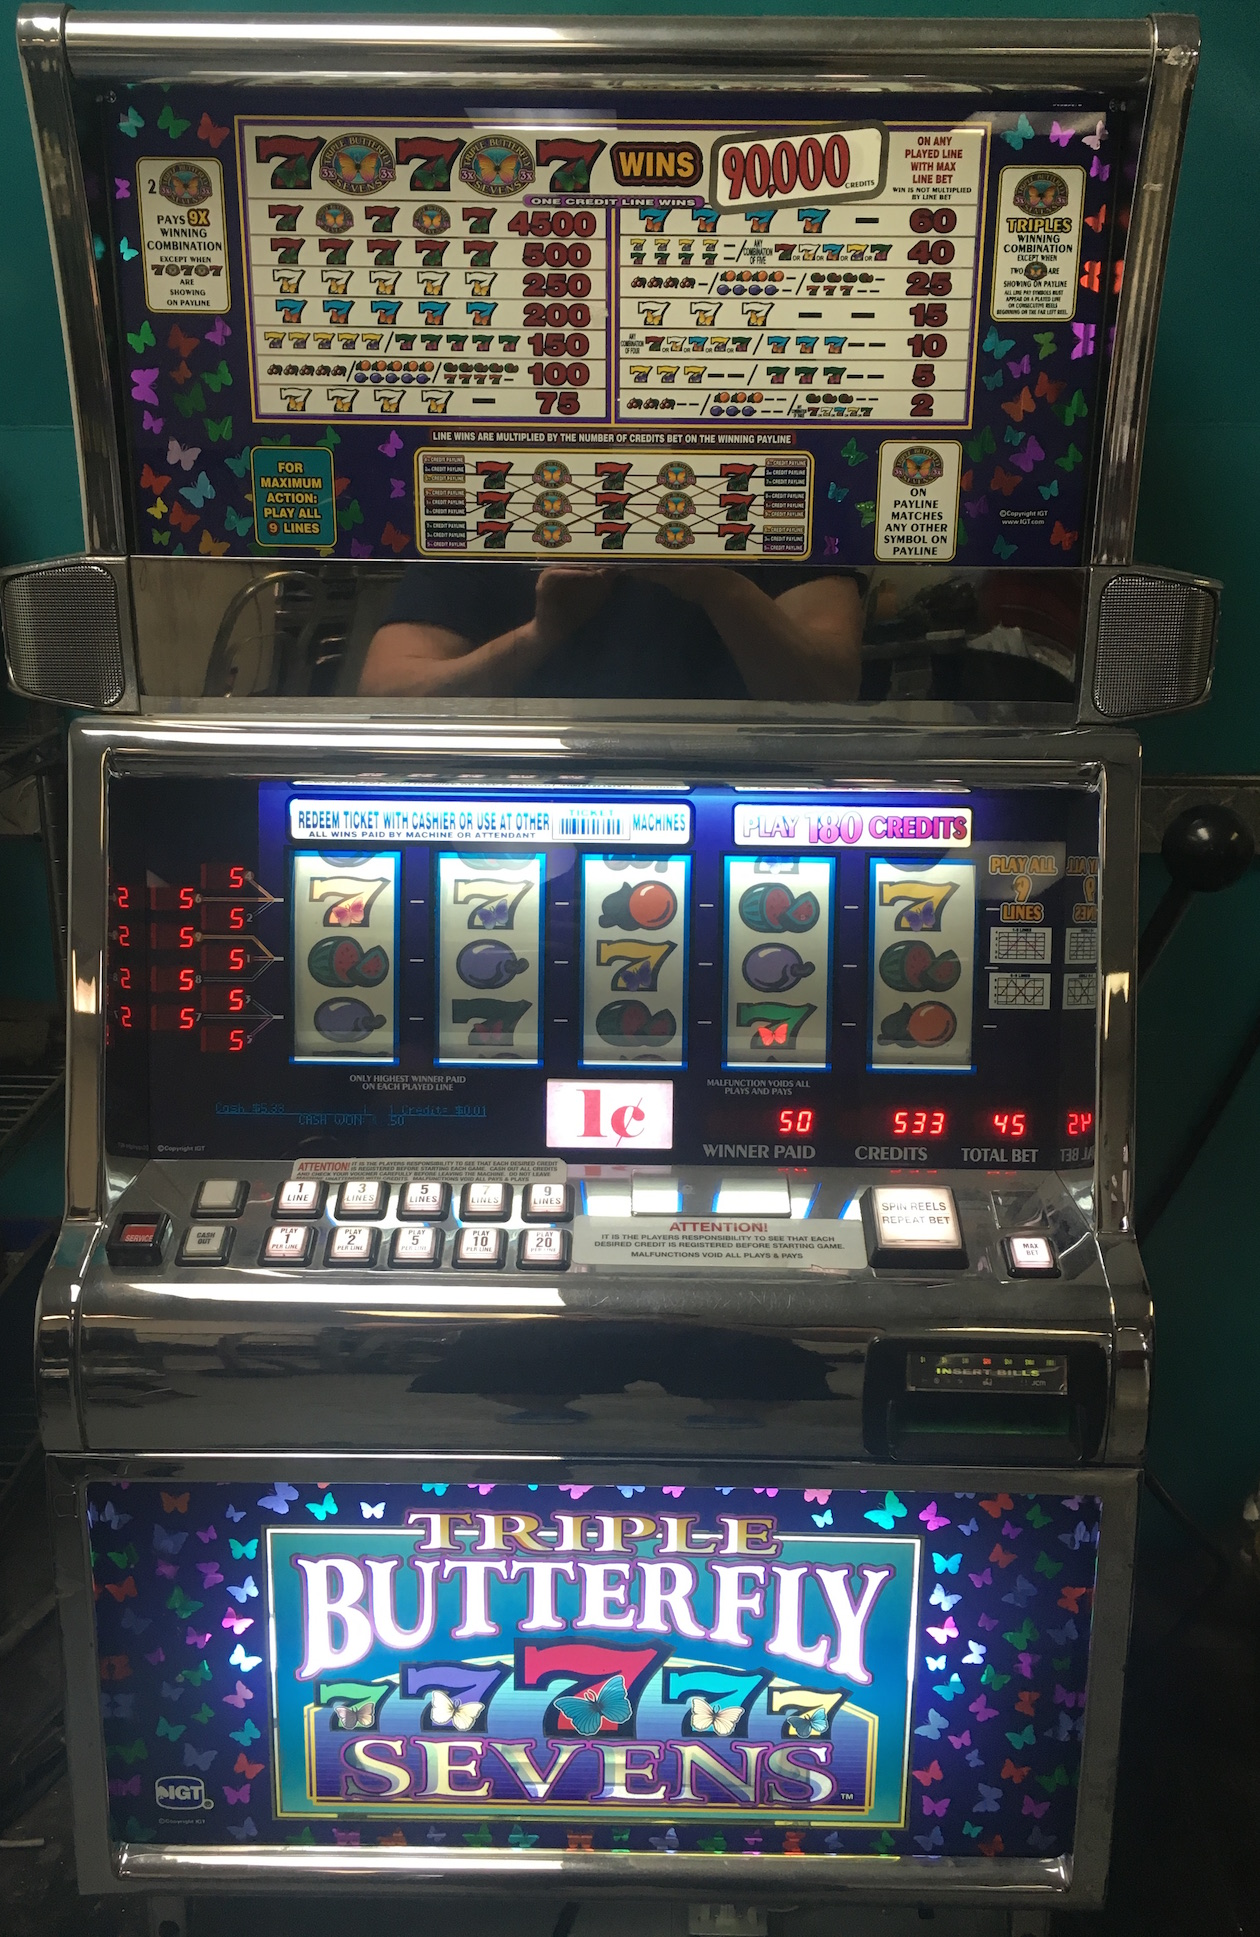 5 reel slot machine